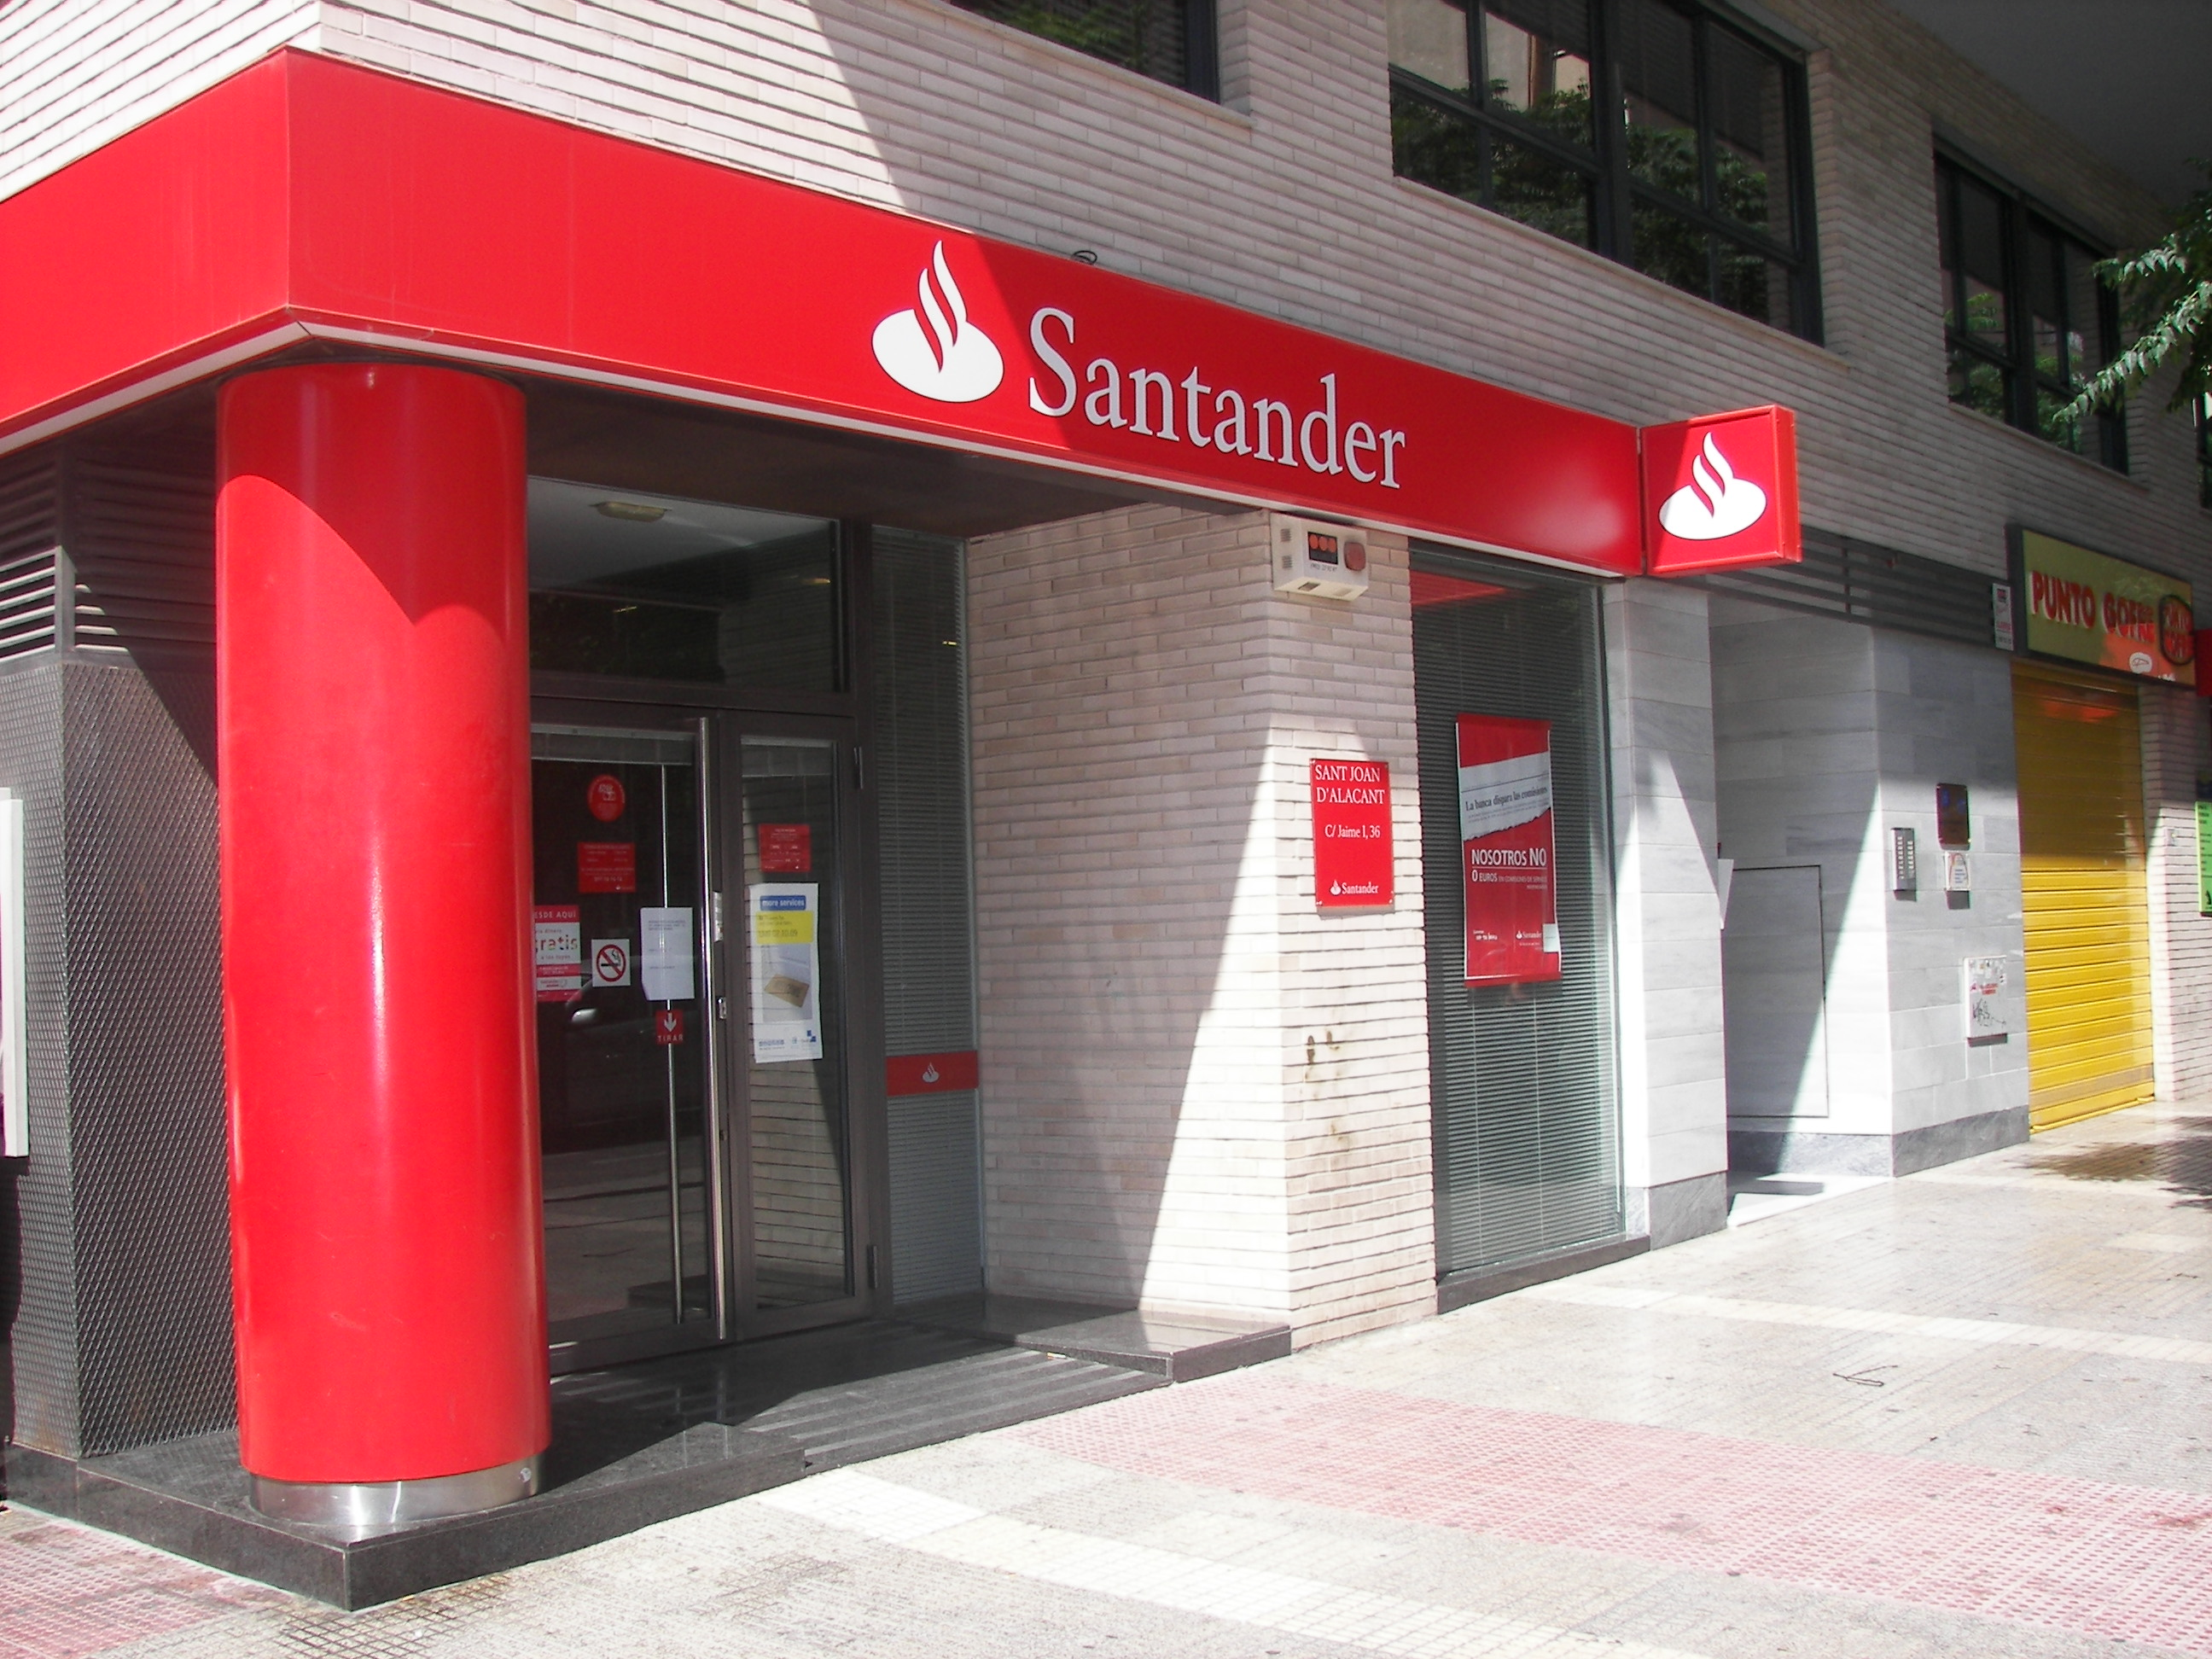 Bsch banco santander central hispano ajuntament de sant for Santander oficinas valencia